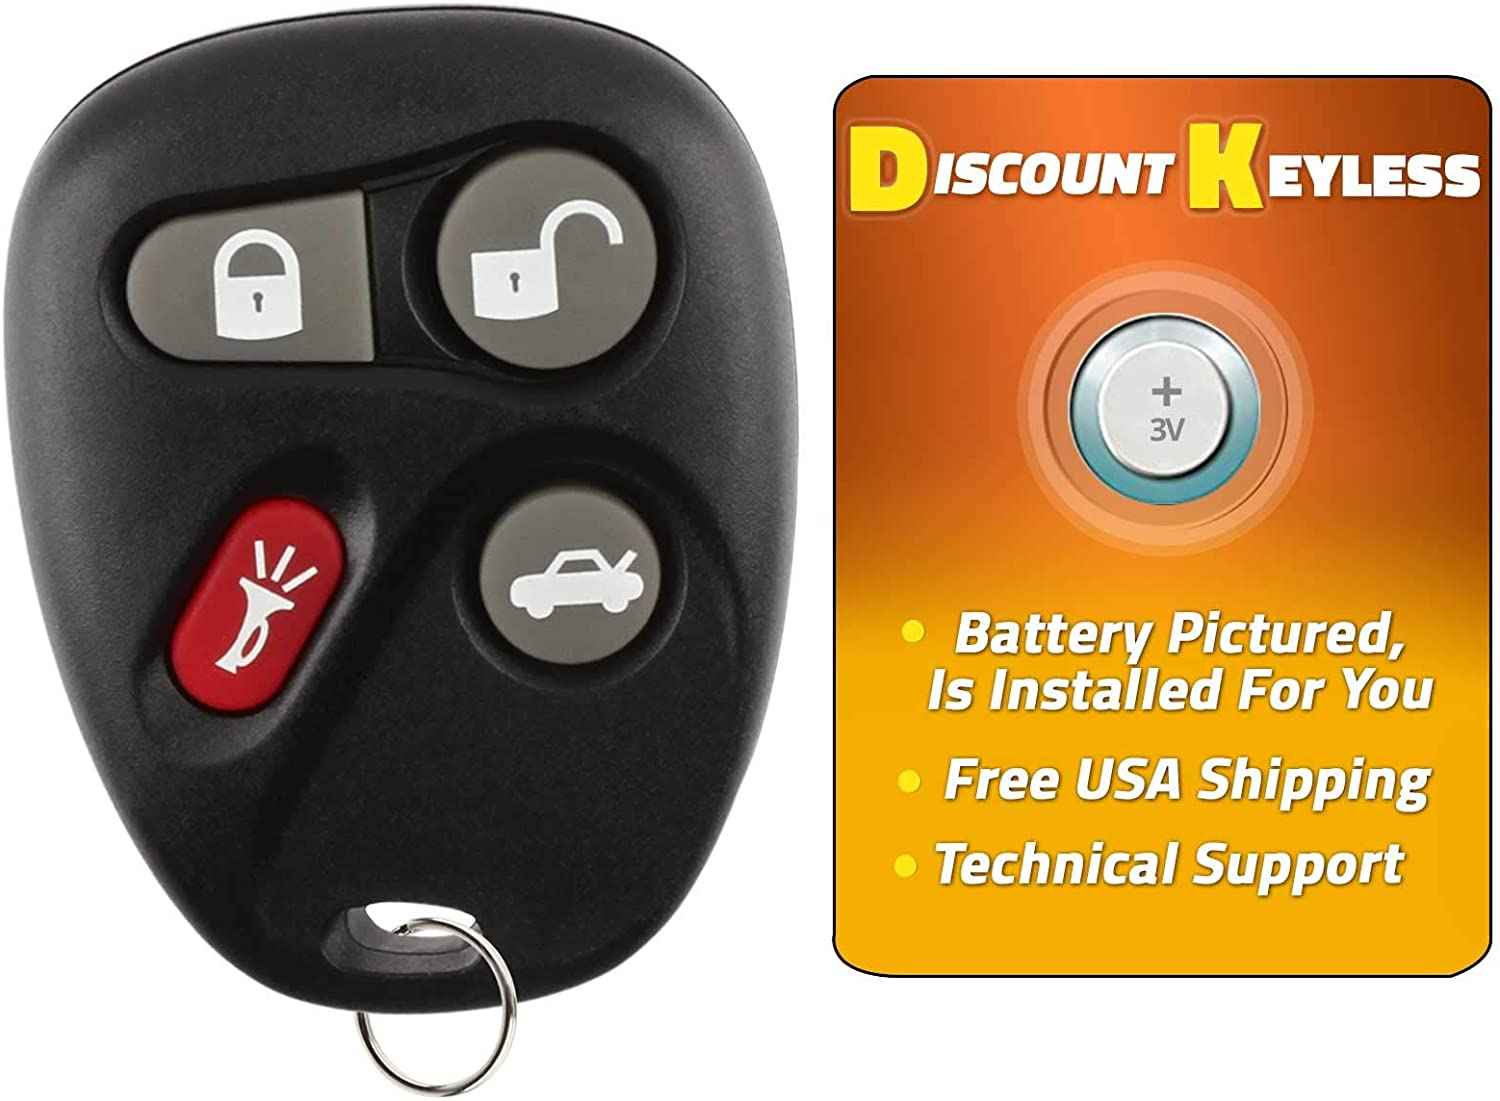 Discount Keyless Replacement Key Fob Car Remote Compatible with KOBUT1BT 2 Pack 25665574 25665575